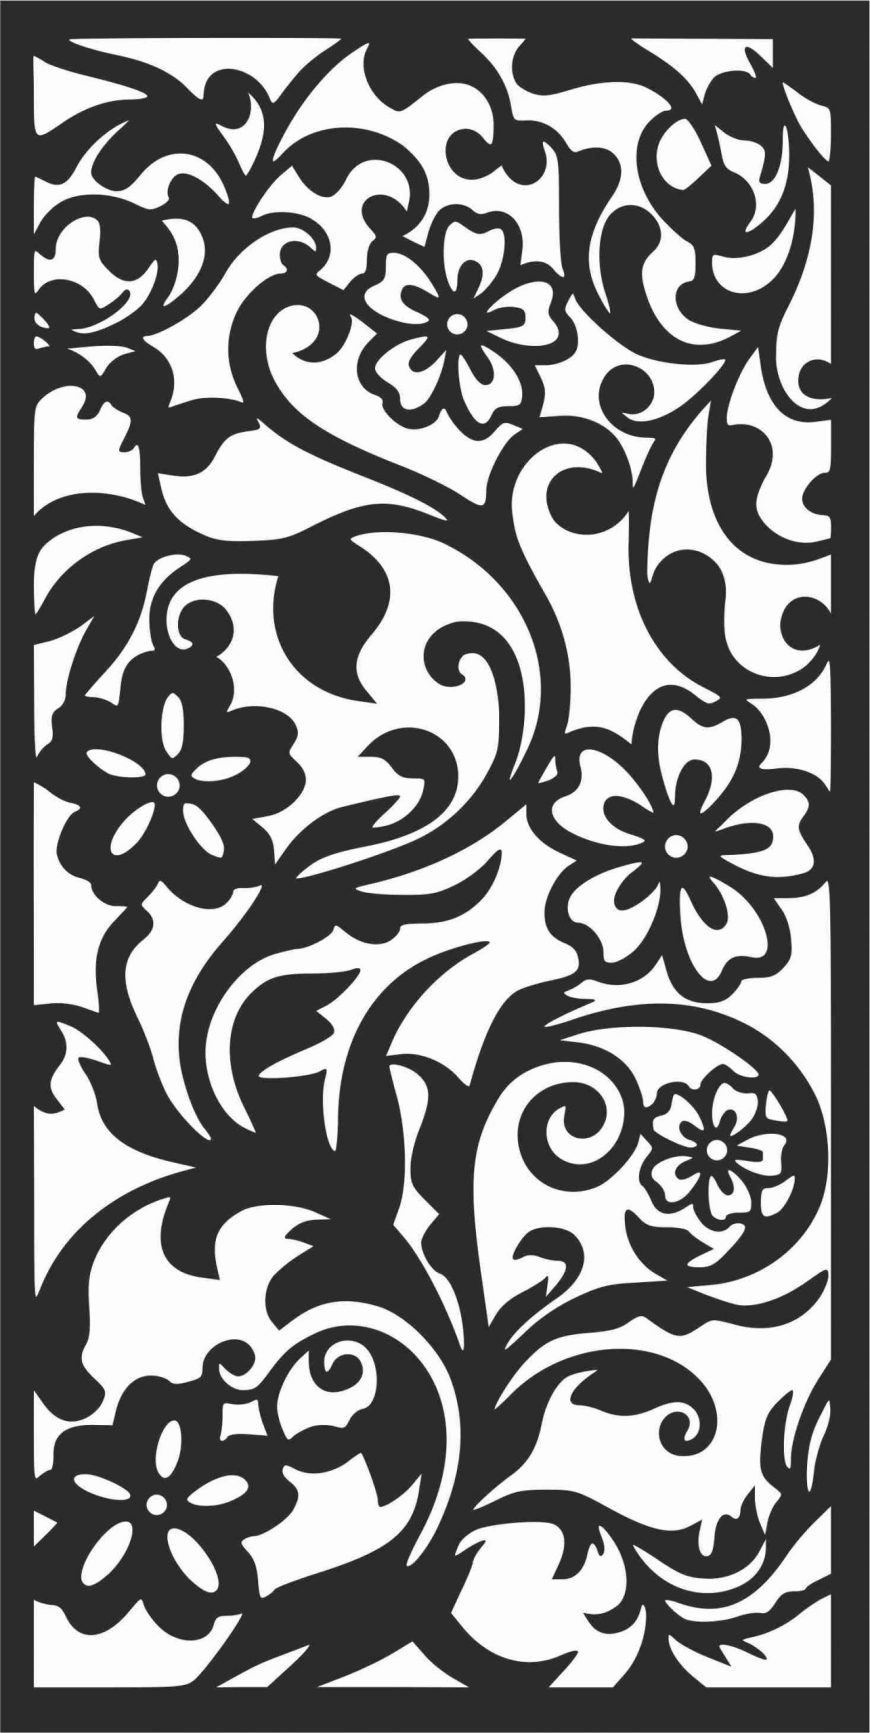 Decorative Screen Patterns For Laser Cutting 123 Free DXF File